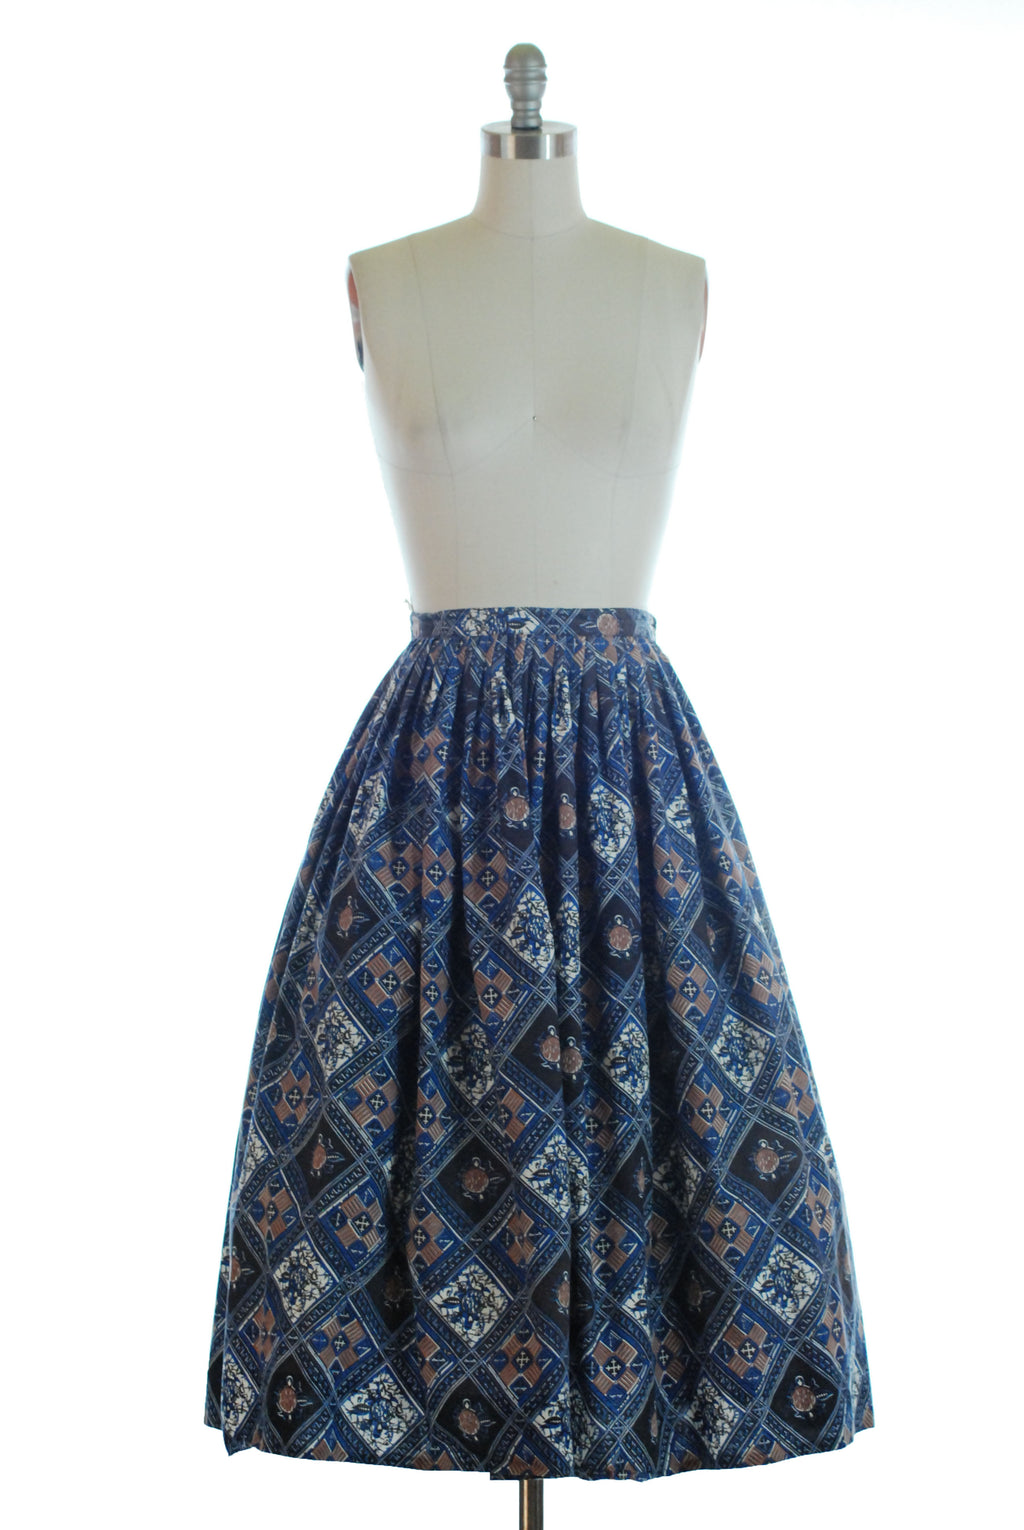 Crisp 1950s Cotton Skirt with Batik Style Fish Print KortLee Original